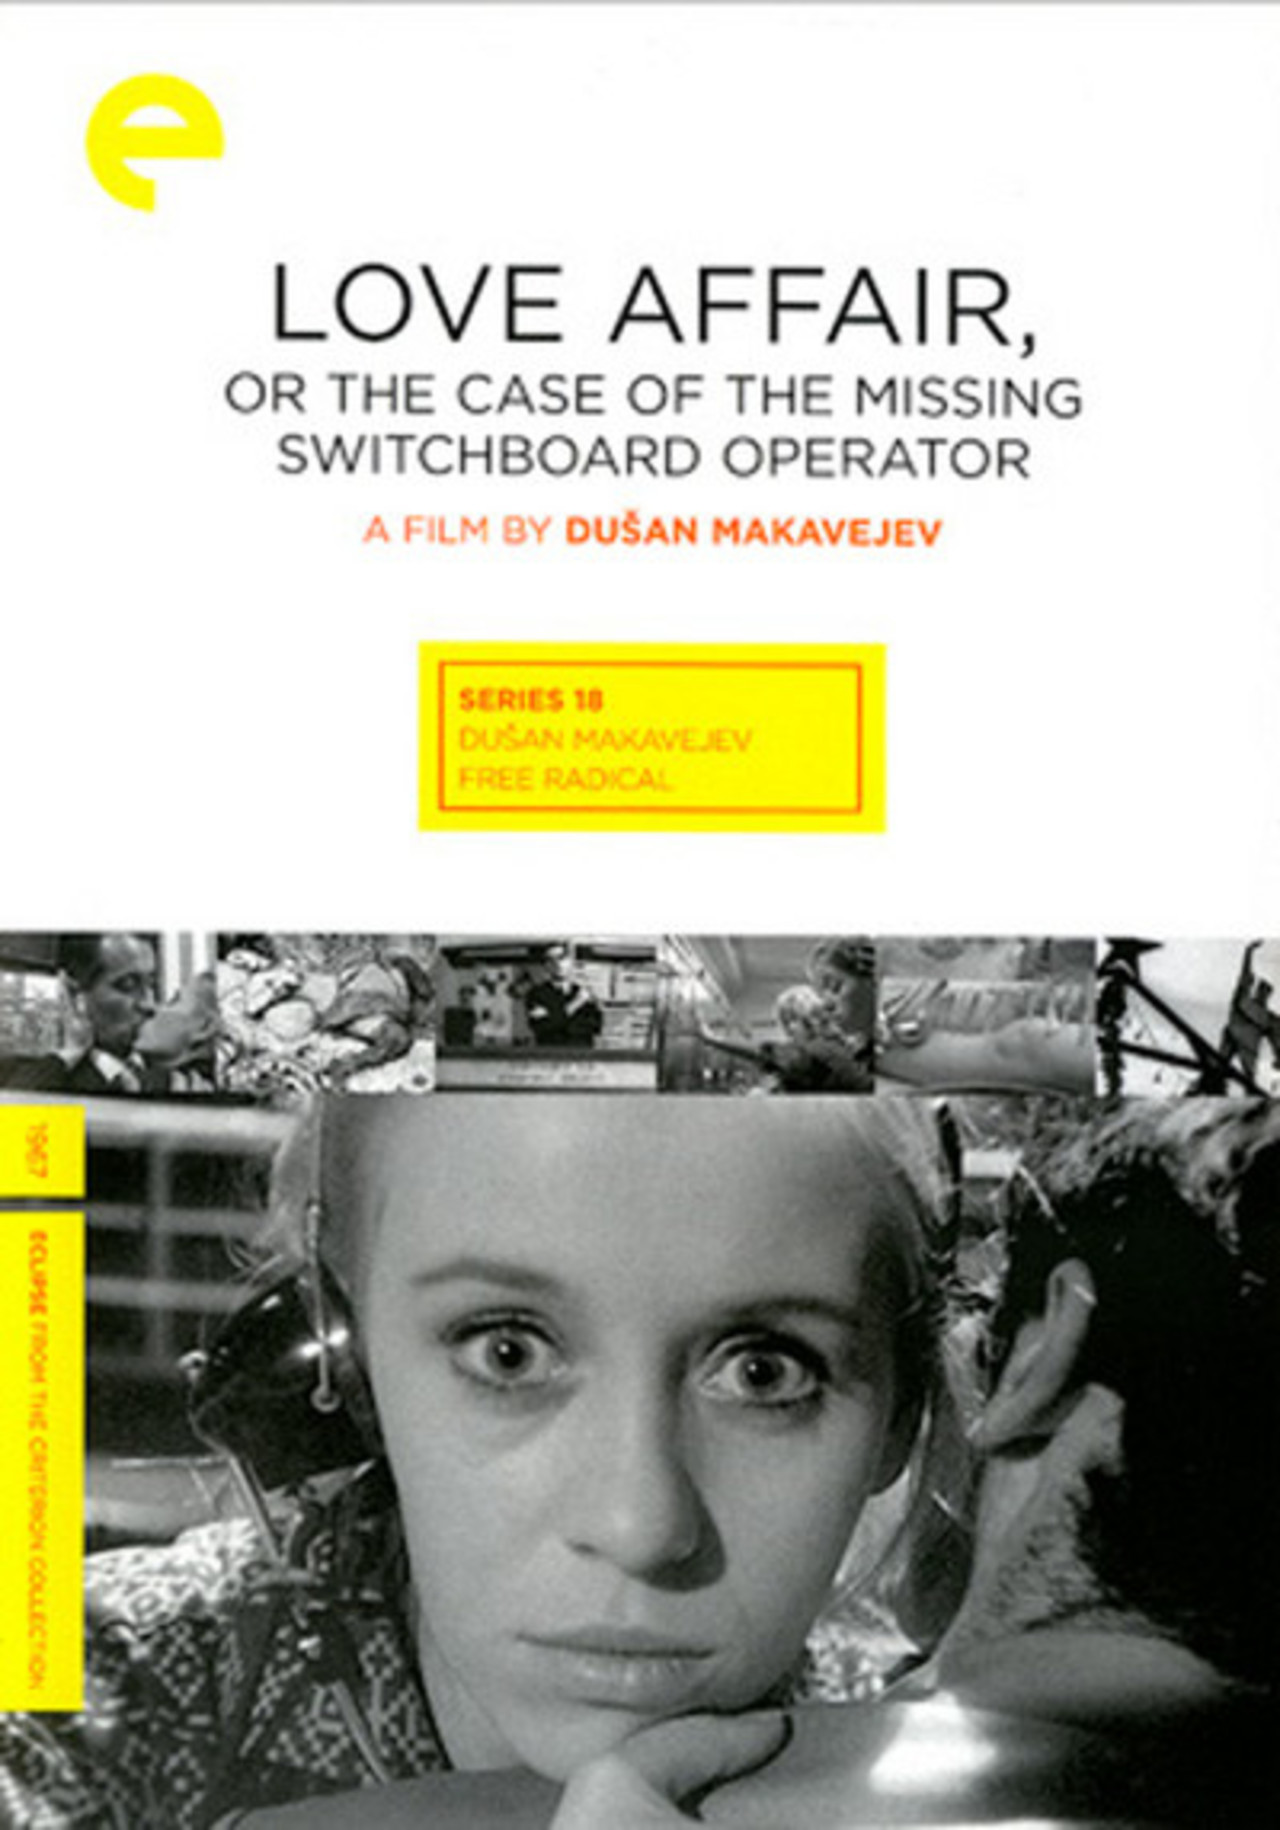 Love Affair; or The Case of the Missing Switchboard Operator (1967)